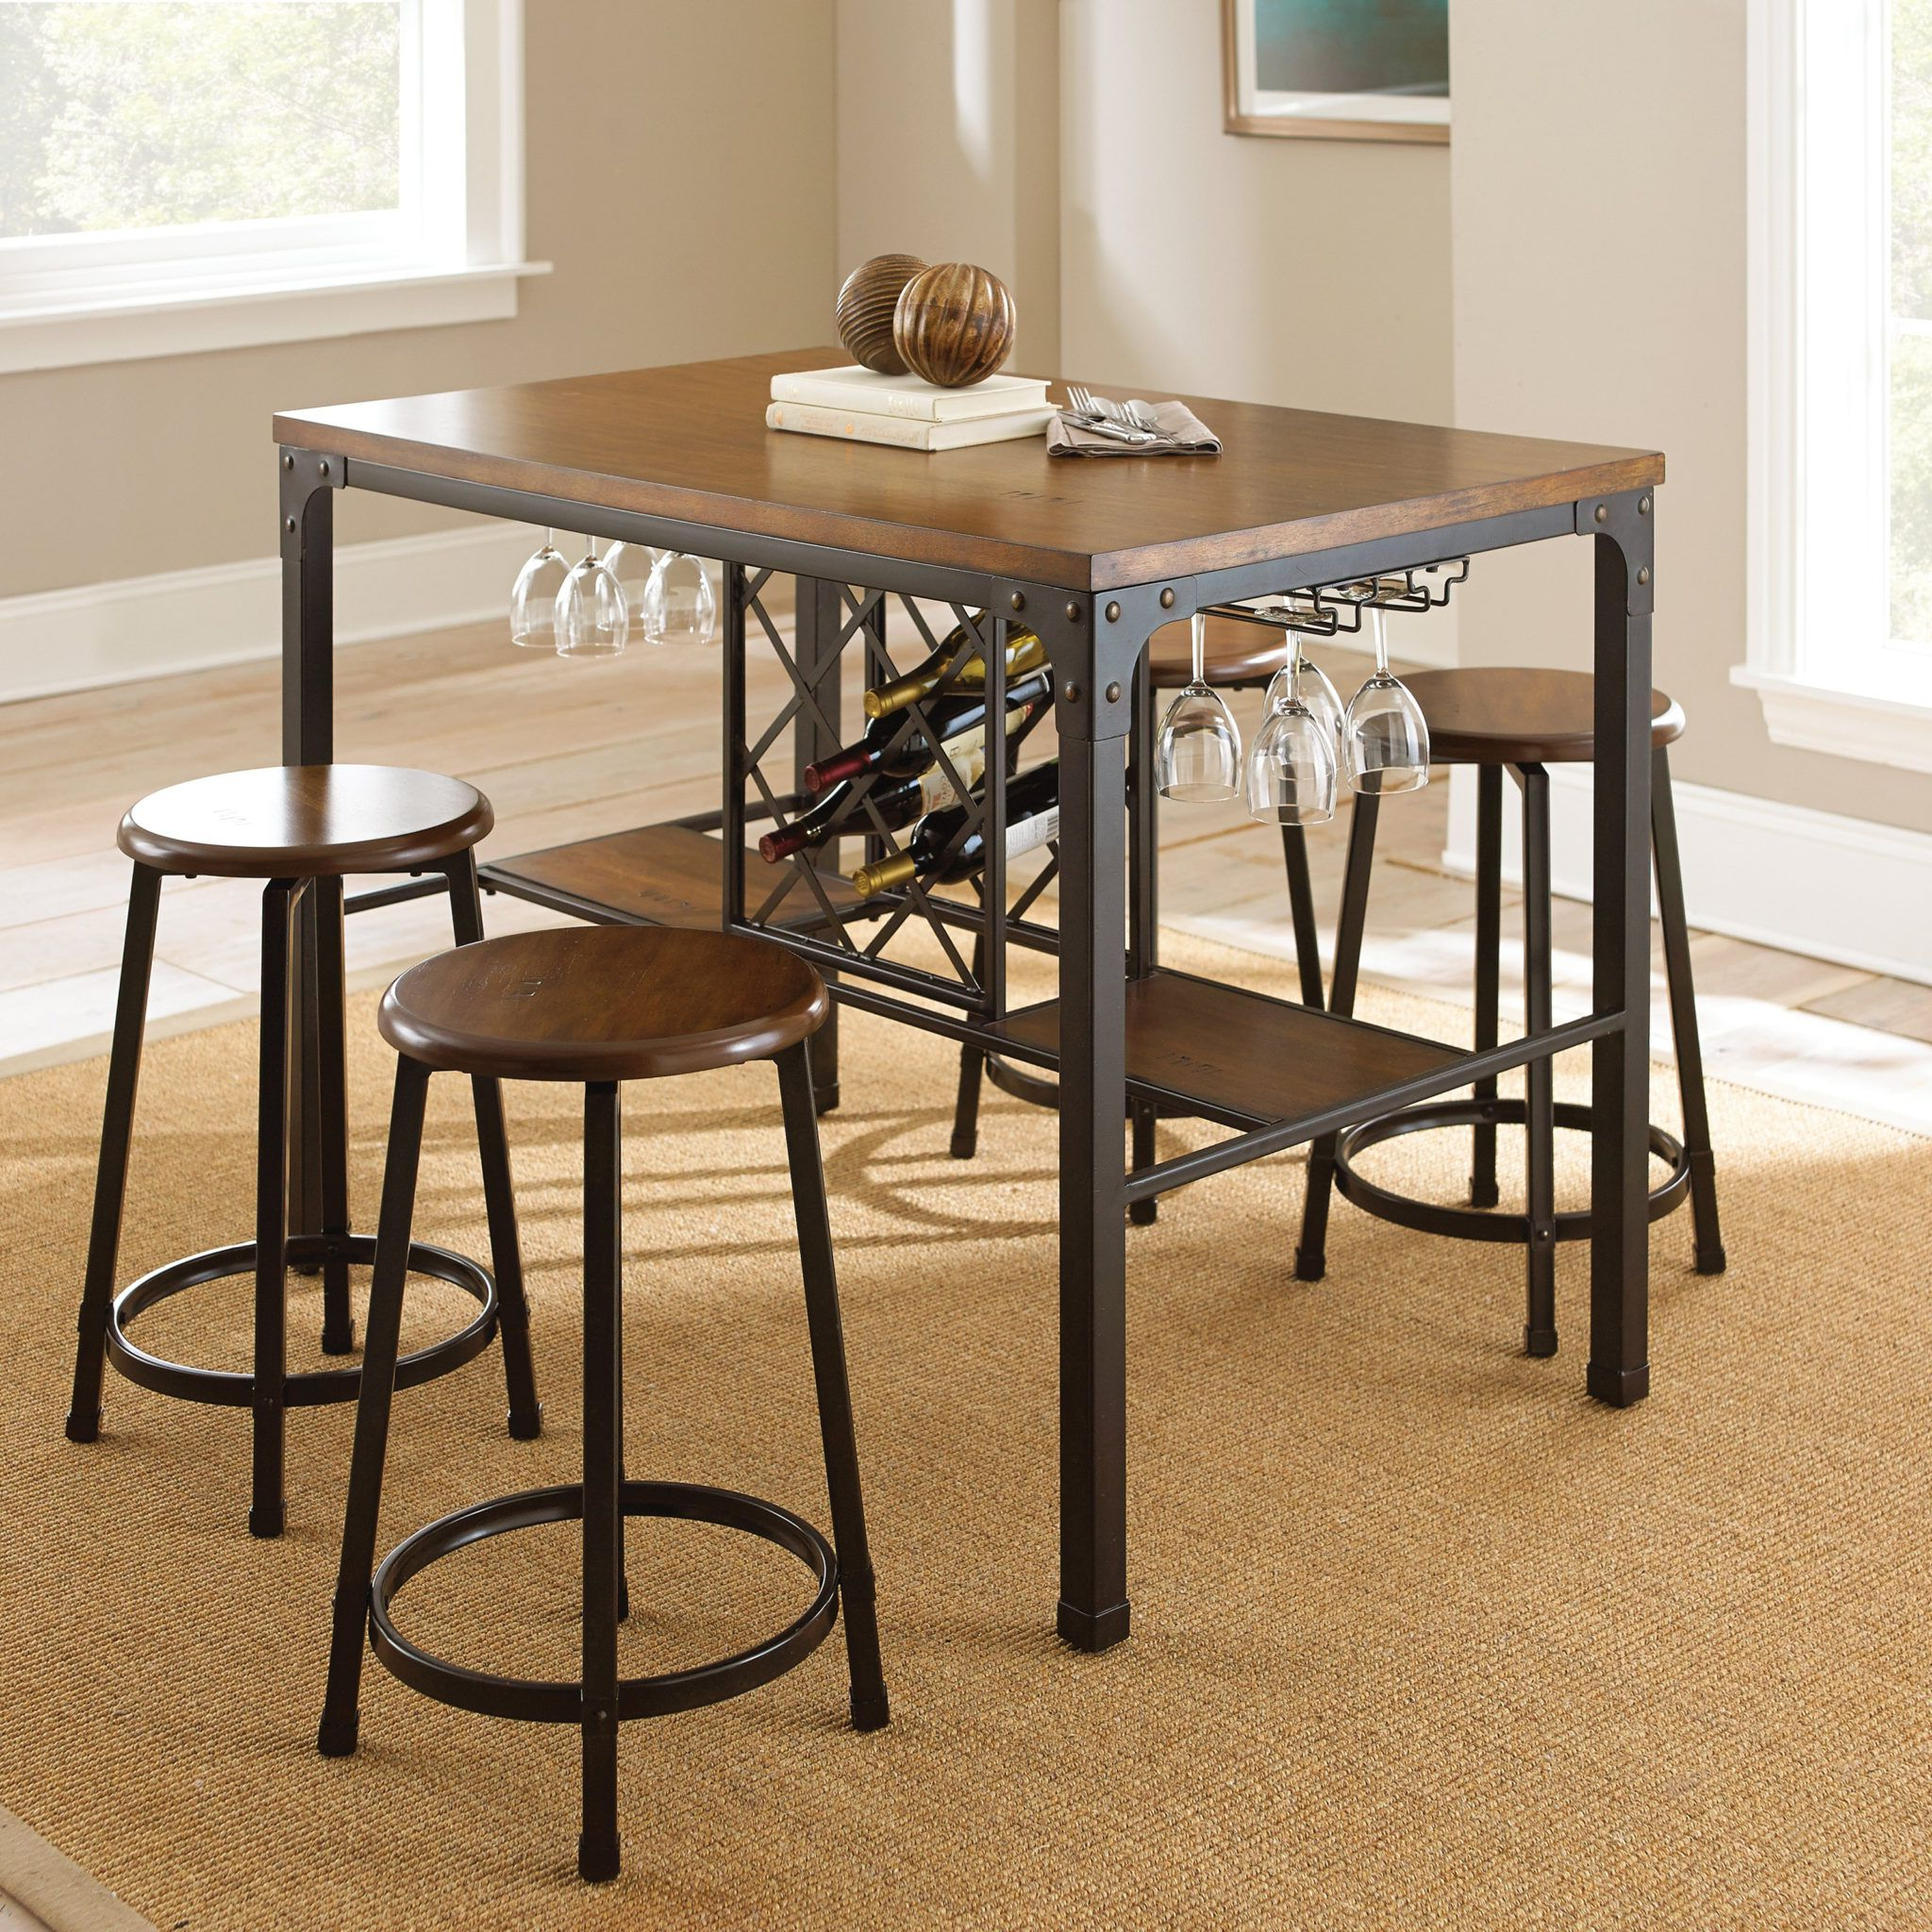 Creative Kitchen Table With Wine Rack Underneath (View 15 of 25)